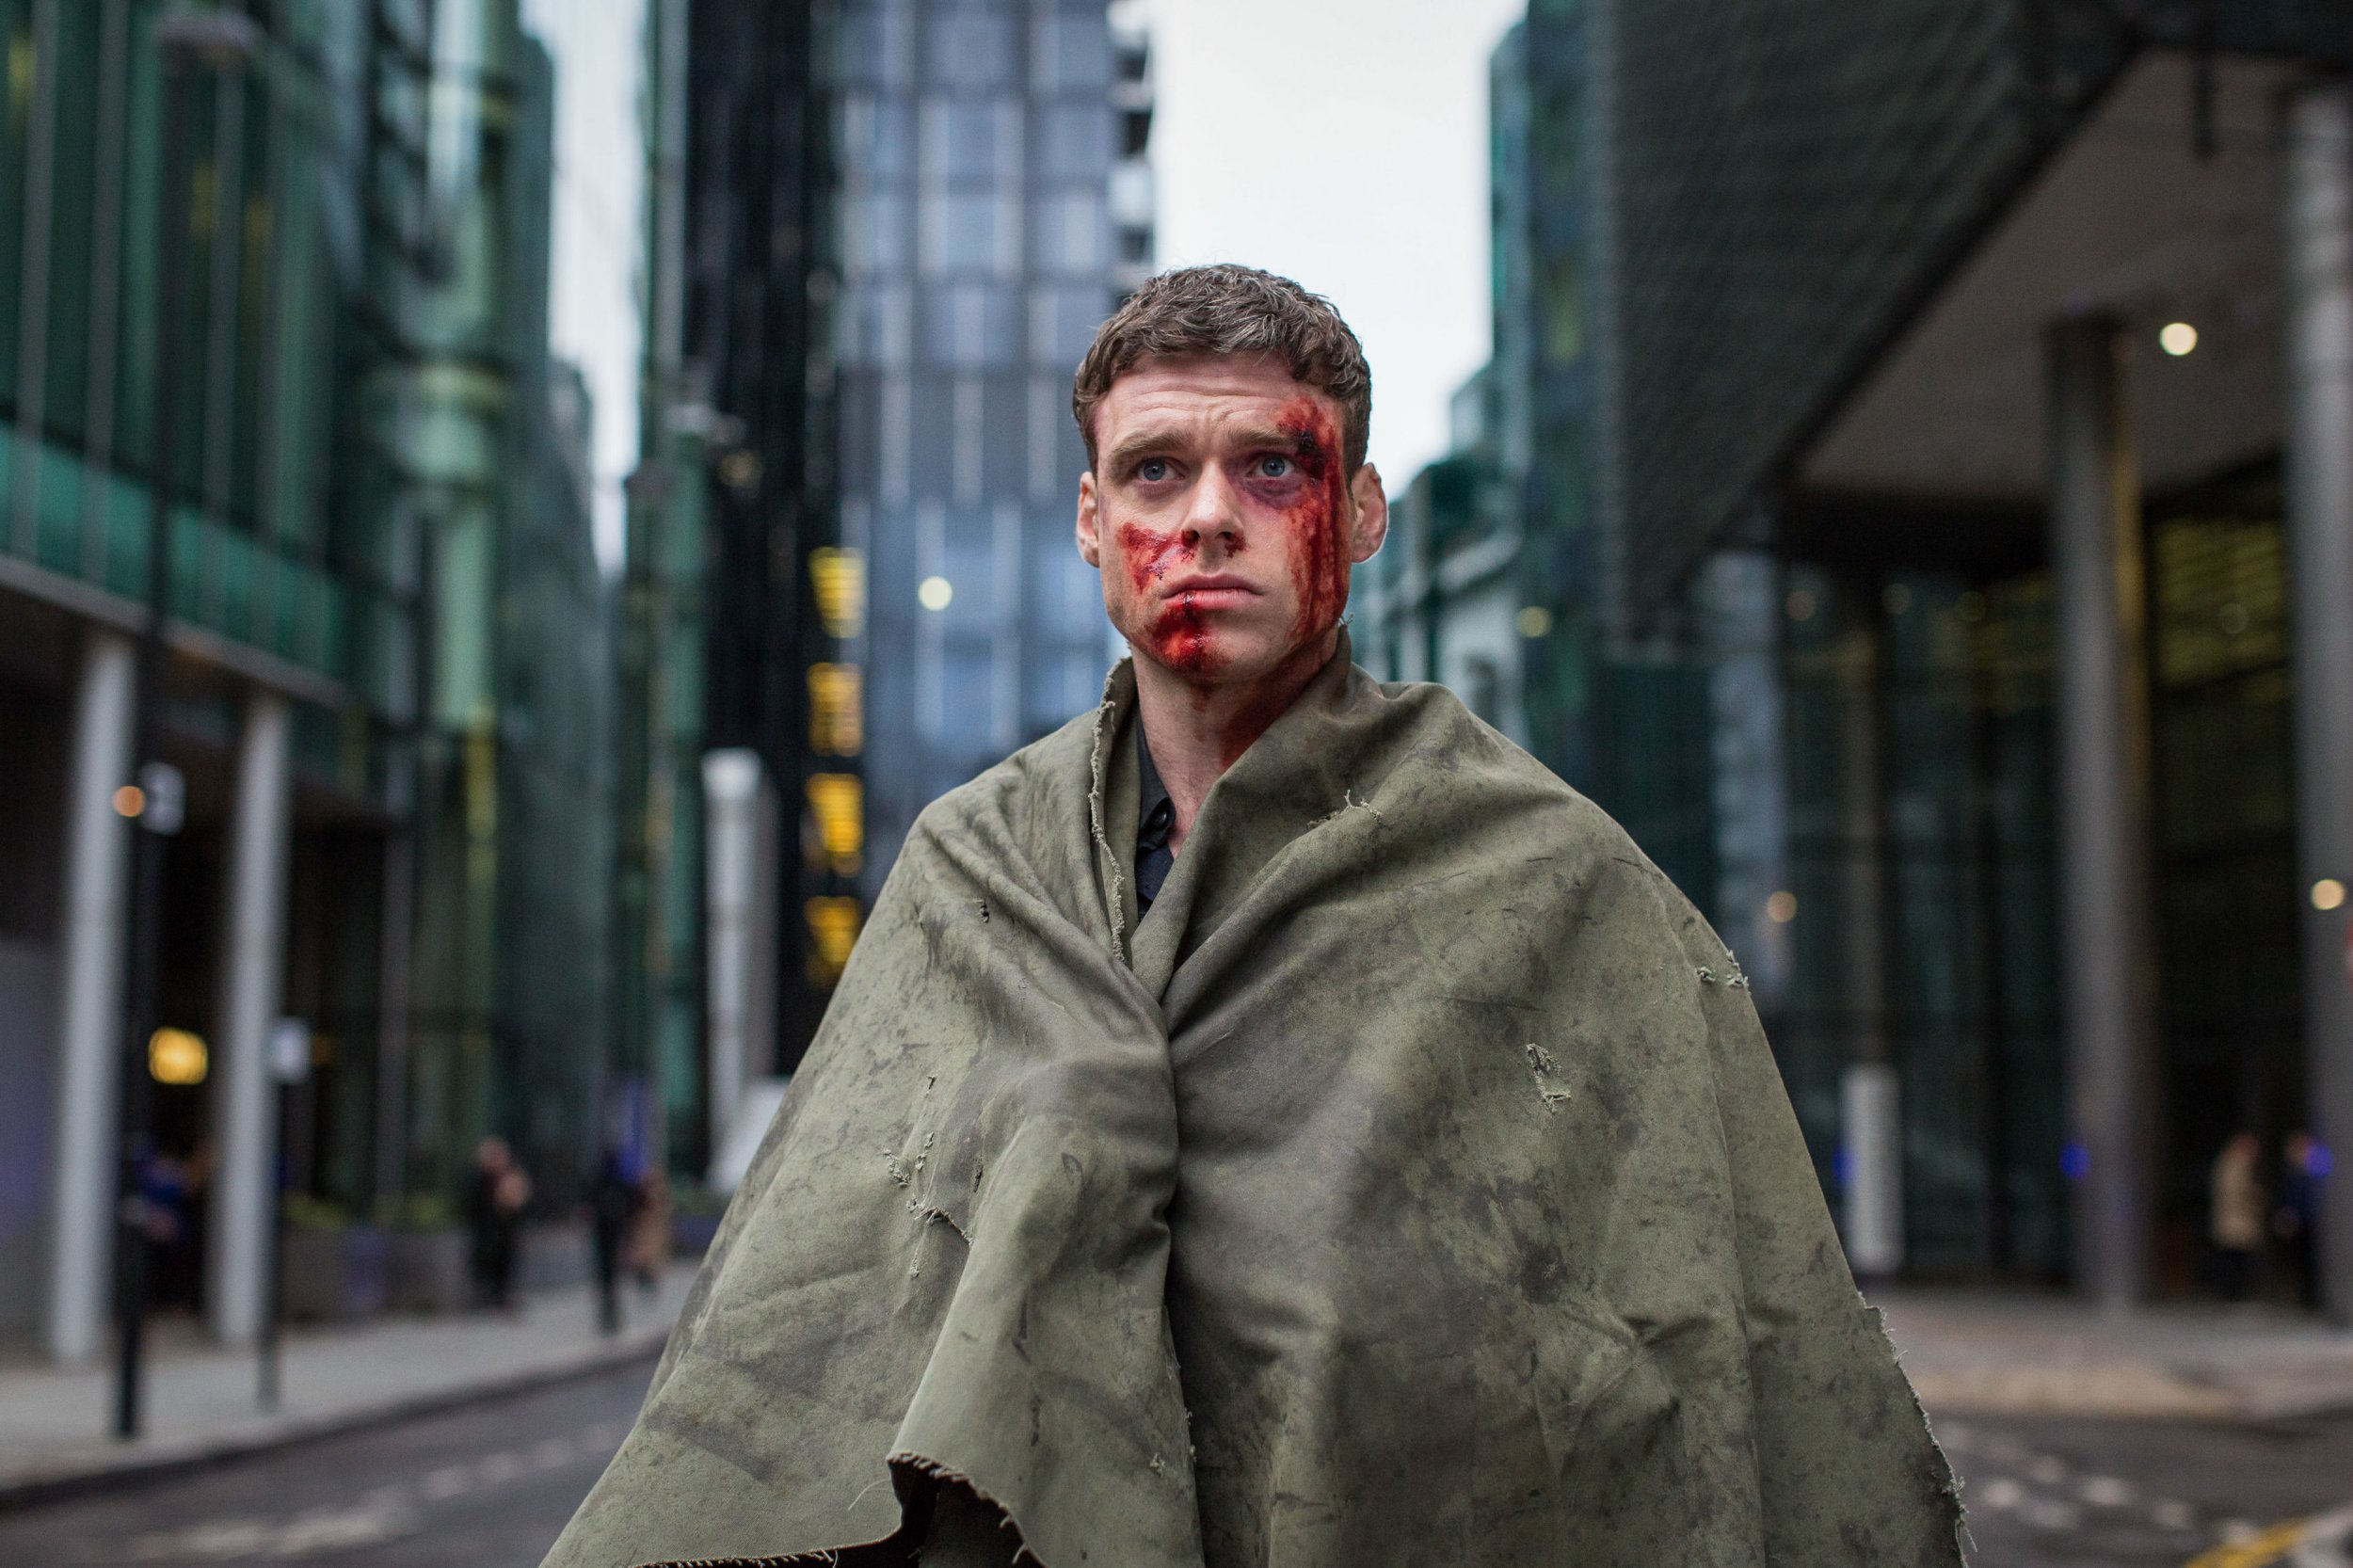 For use in UK, Ireland or Benelux countries only Undated BBC handout photo of Richard Madden as David Budd. According the BBC the finale of the how has become the most-watched episode of any drama since records began in 2002. PRESS ASSOCIATION Photo. Issue date: Tuesday October 23, 2018. The figure was calculated using Barb's updated four-screen measure, which was introduced in August and now includes data for those viewing programmes through online non-TV devices such as PCs, laptops, smartphones and tablets. See PA story SHOWBIZ Bodyguard. Photo credit should read: Sophie Mutevelian/World Producti/BBC/PA Wire NOTE TO EDITORS: Not for use more than 21 days after issue. You may use this picture without charge only for the purpose of publicising or reporting on current BBC programming, personnel or other BBC output or activity within 21 days of issue. Any use after that time MUST be cleared through BBC Picture Publicity. Please credit the image to the BBC and any named photographer or independent programme maker, as described in the caption.